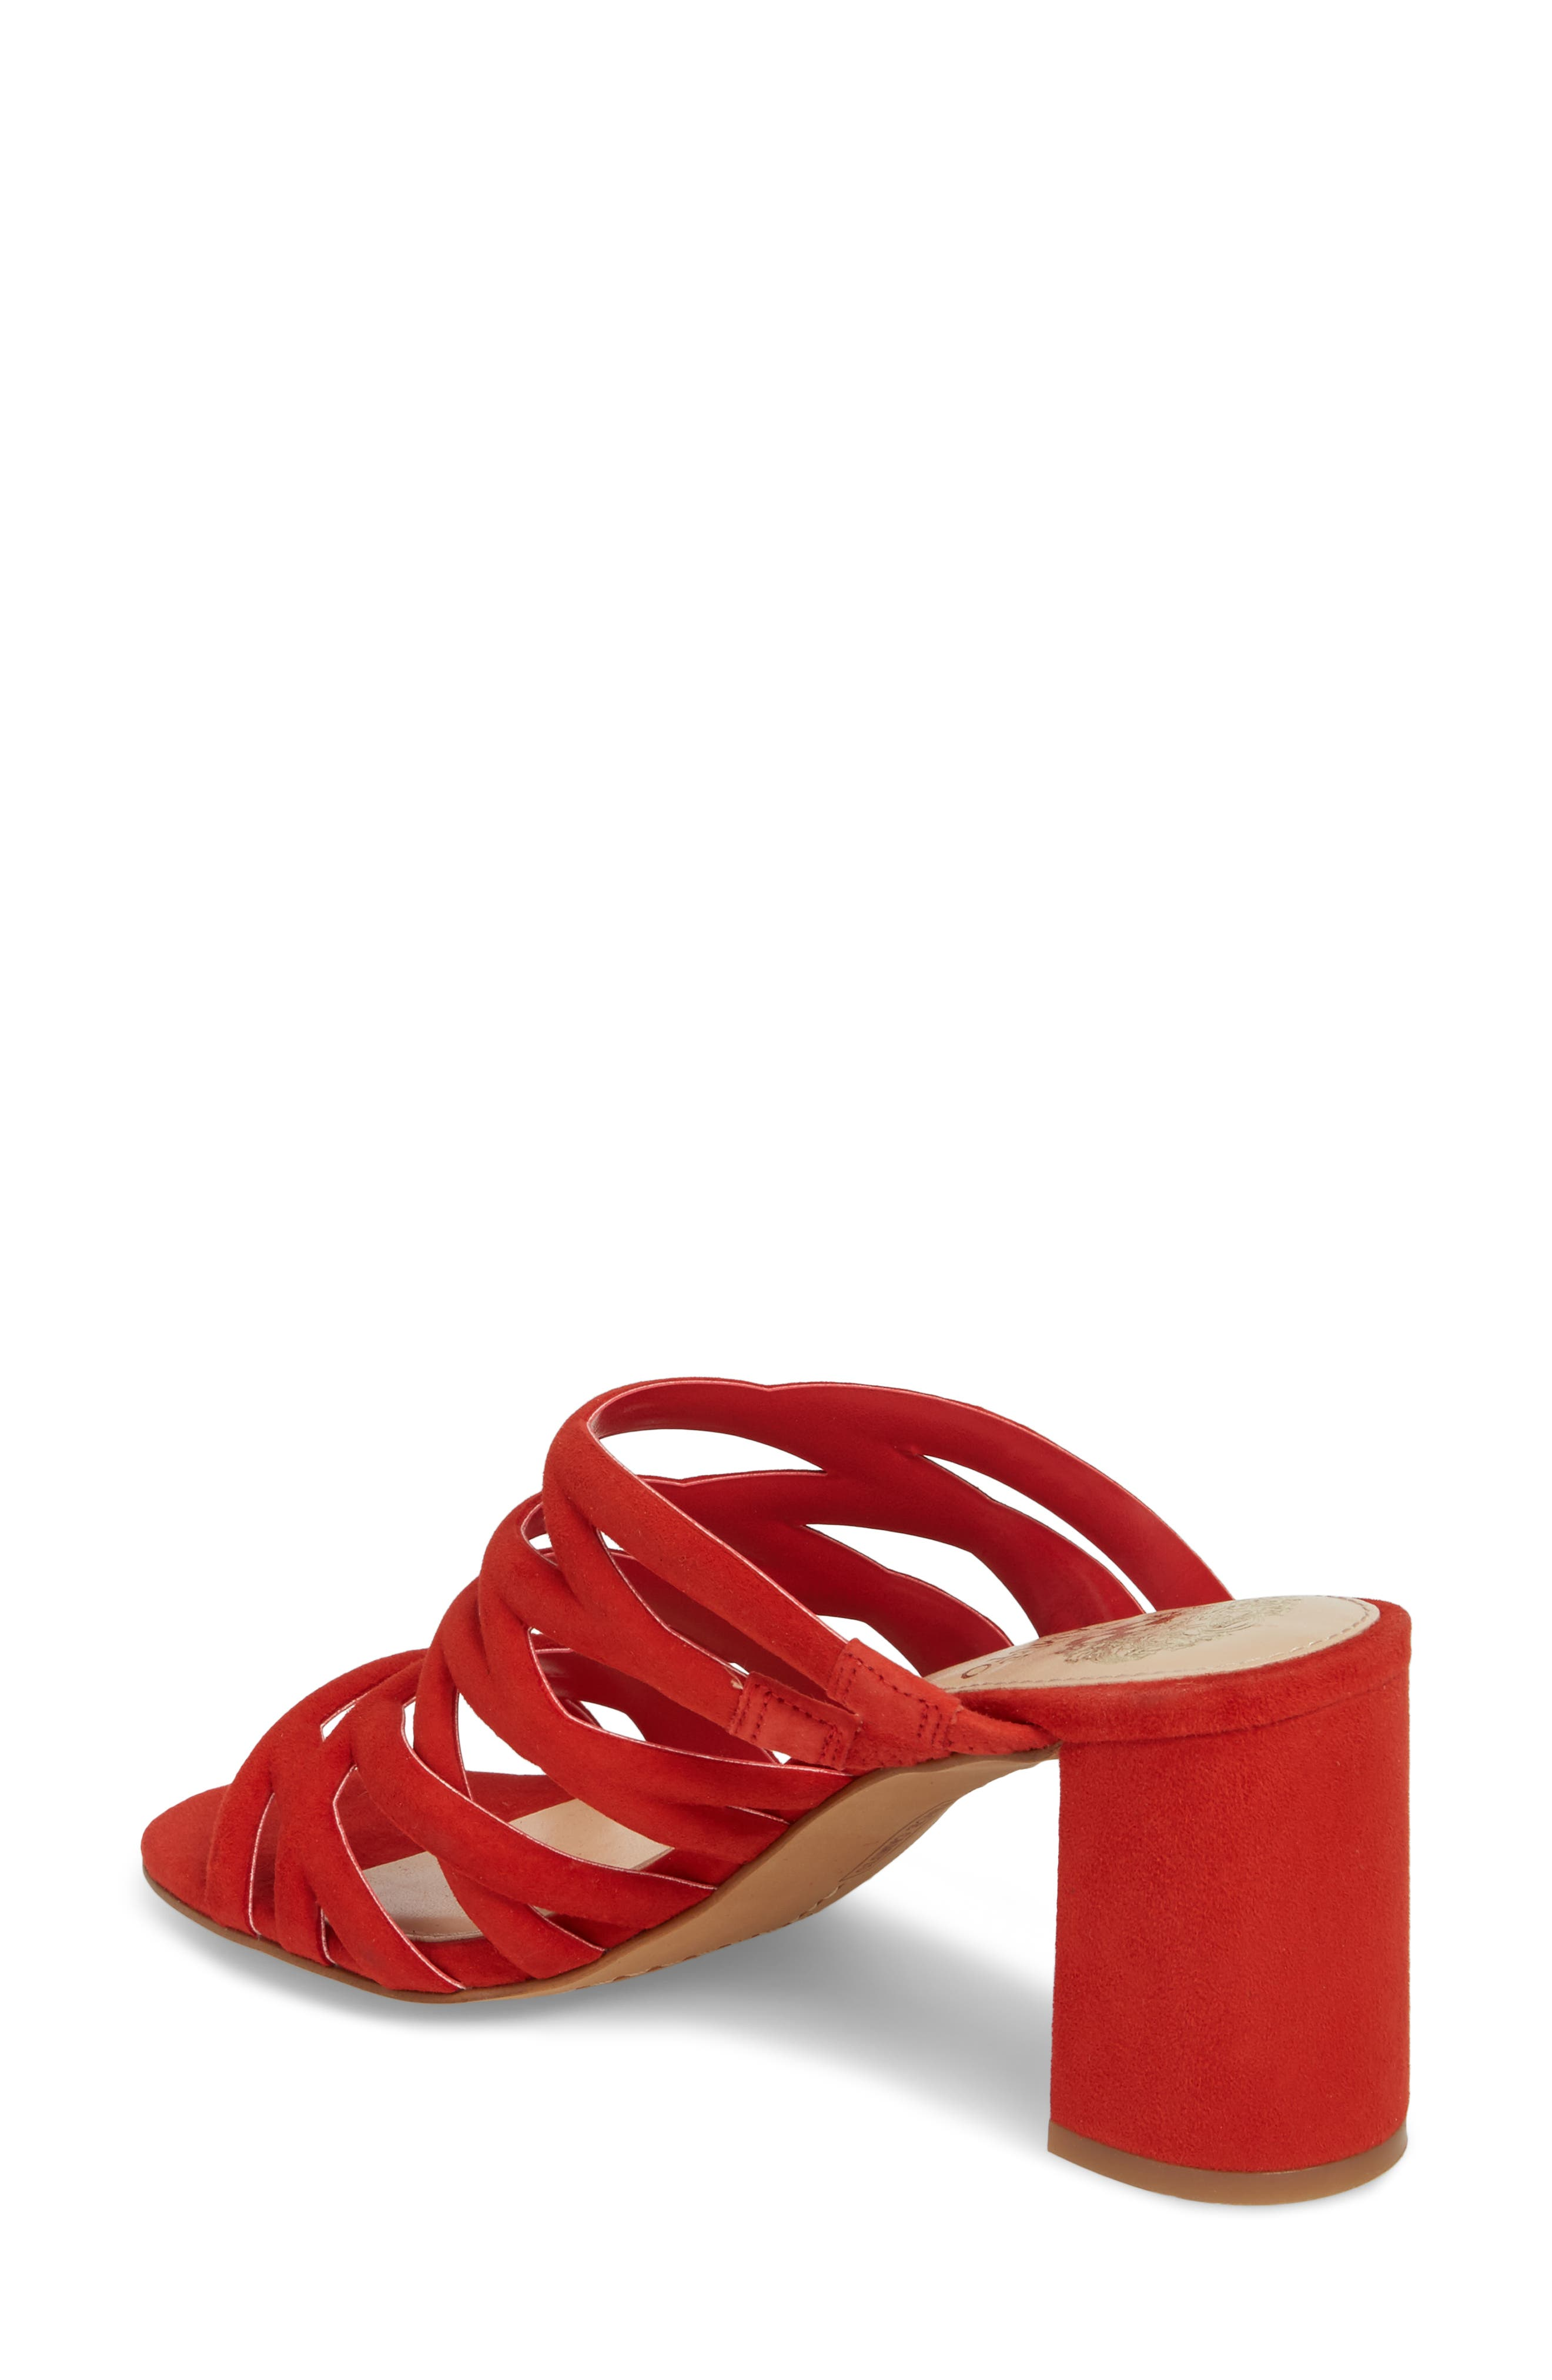 Raveana Cage Mule,                             Alternate thumbnail 2, color,                             Red Hot Rio Suede